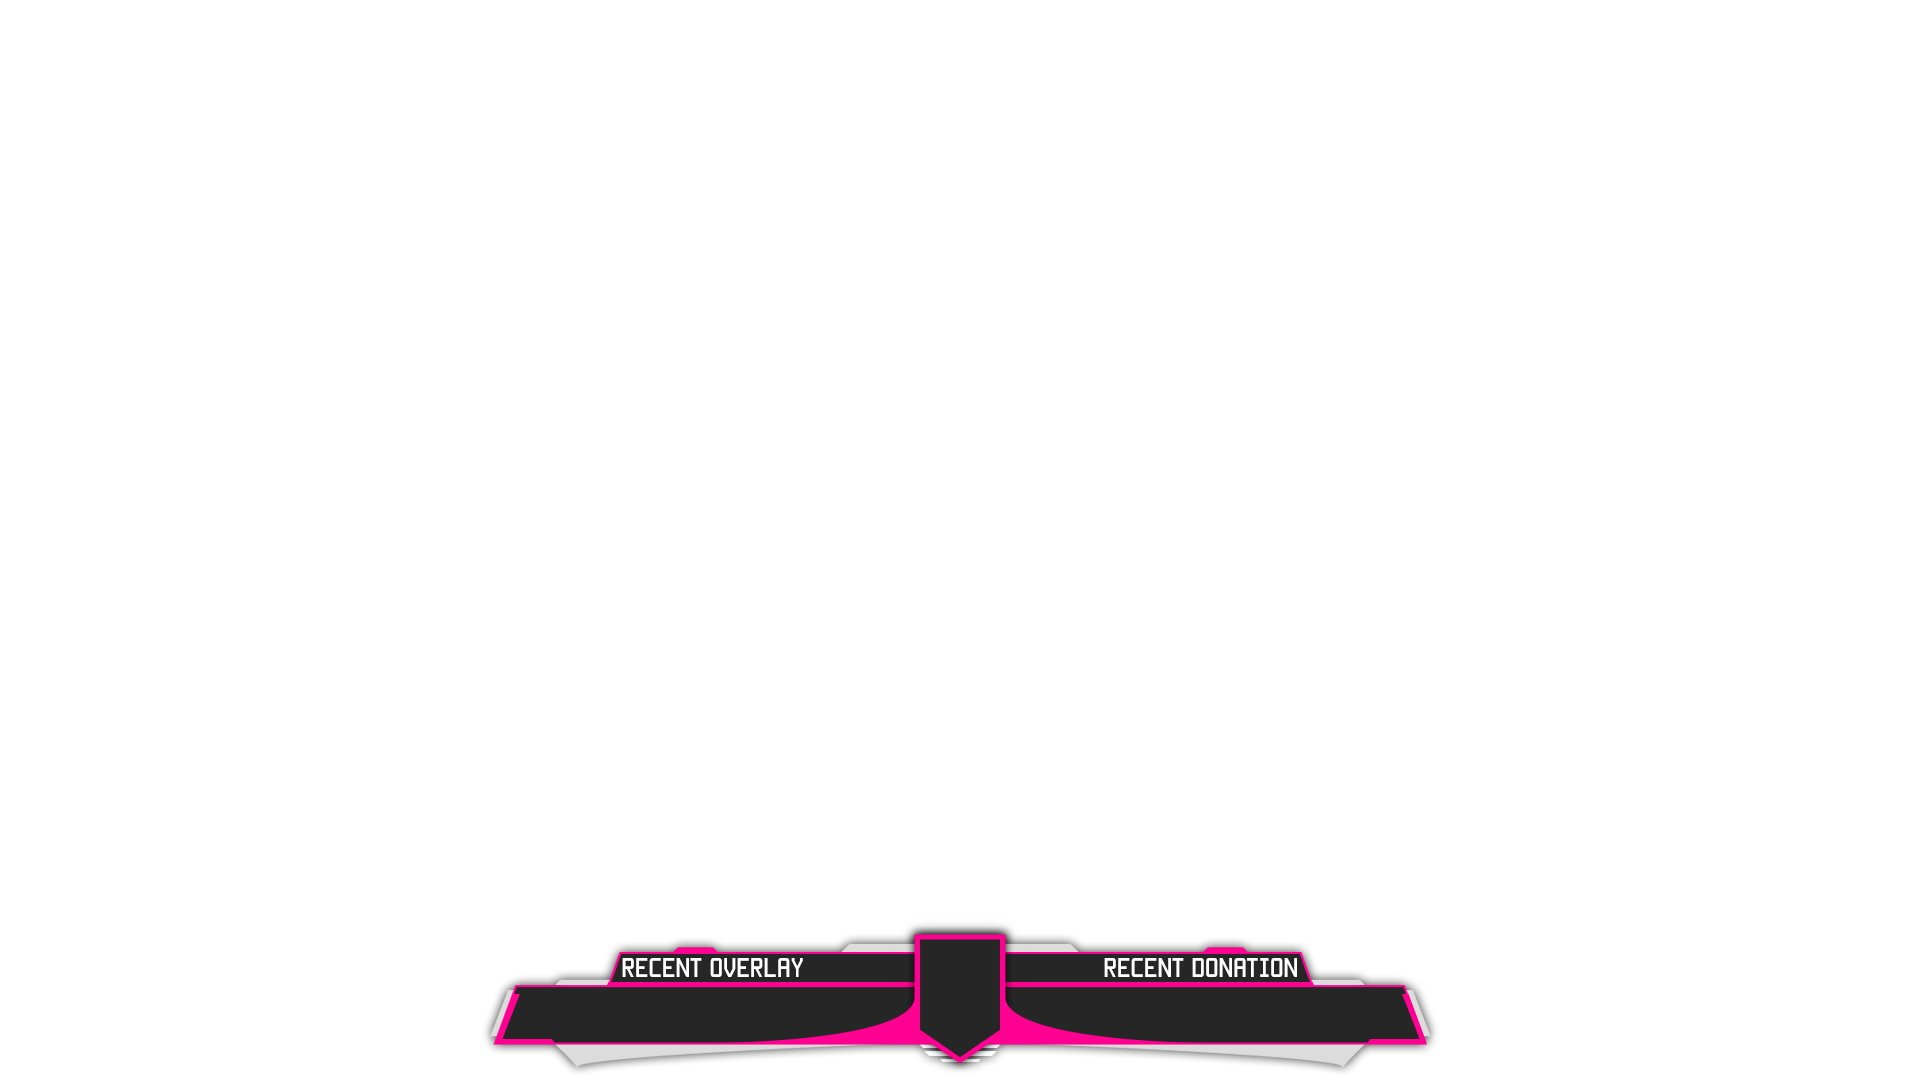 xsplit overlay stream download